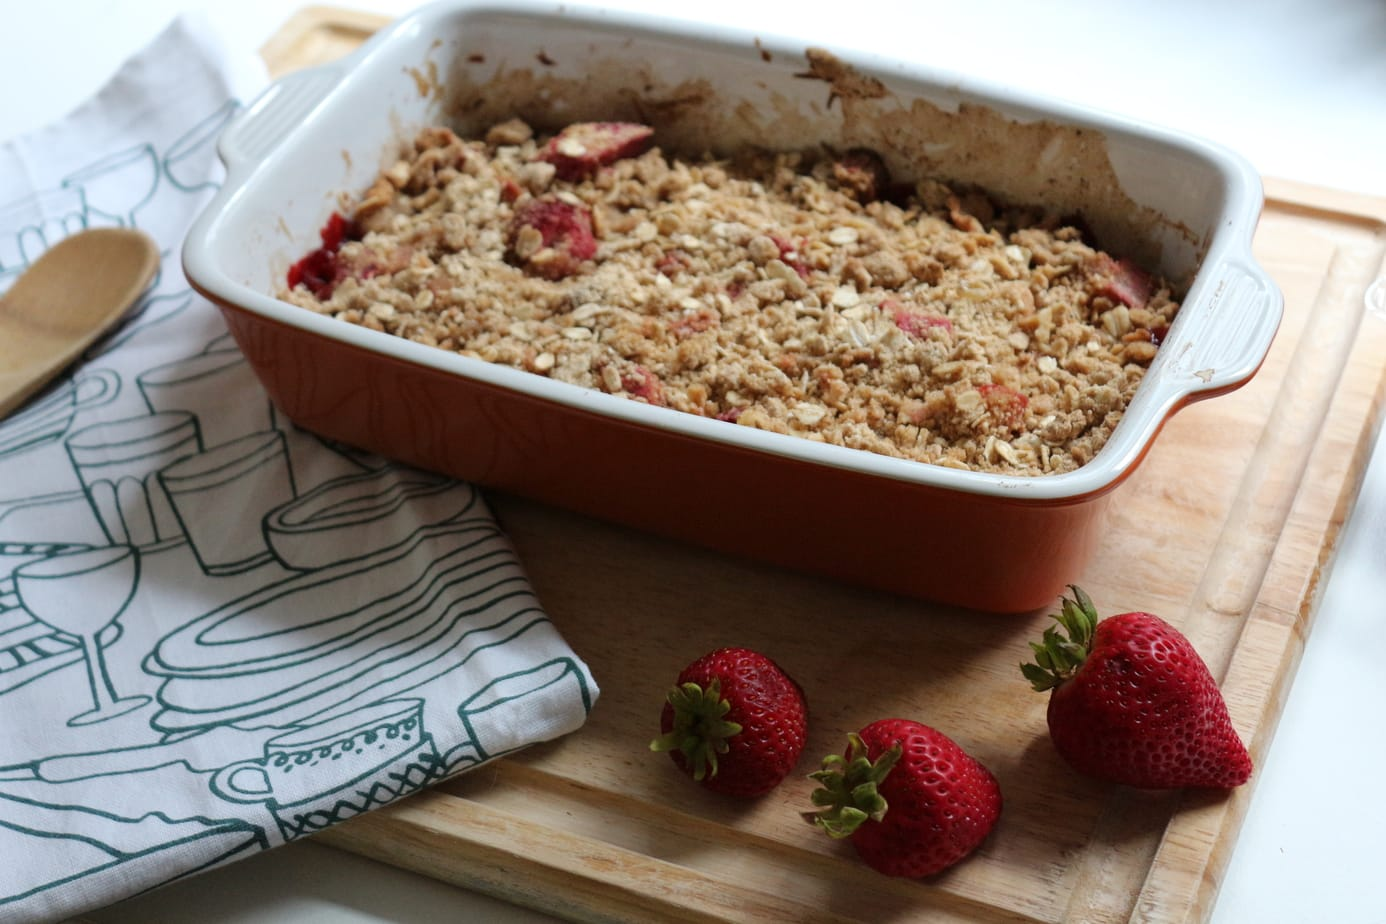 Summer Solstice & Strawberry-Rhubarb Crisp